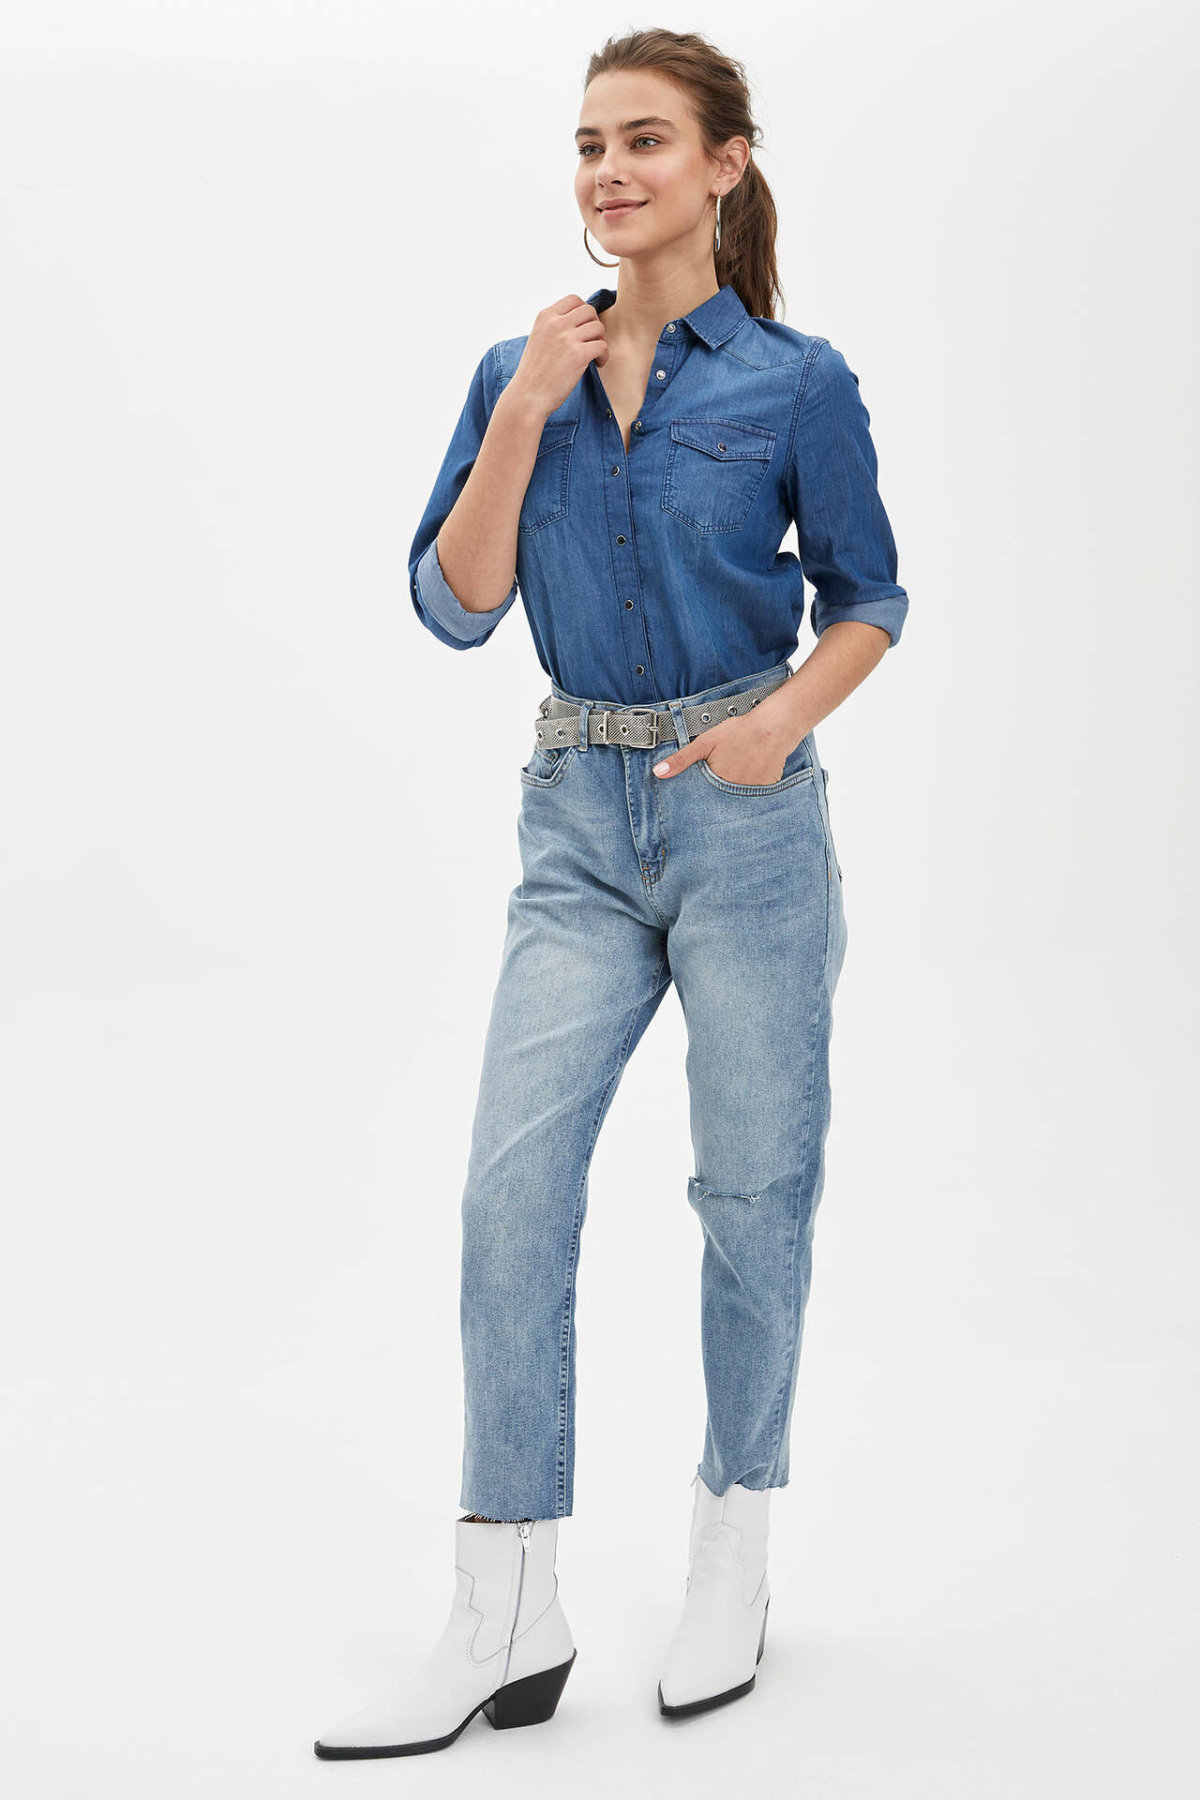 DeFacto Frau Frühling Blau Denim Jeans Frauen Casual Ripped Holes Denim Hosen Frauen Gerade Denim Bottom-R1671AZ20SP